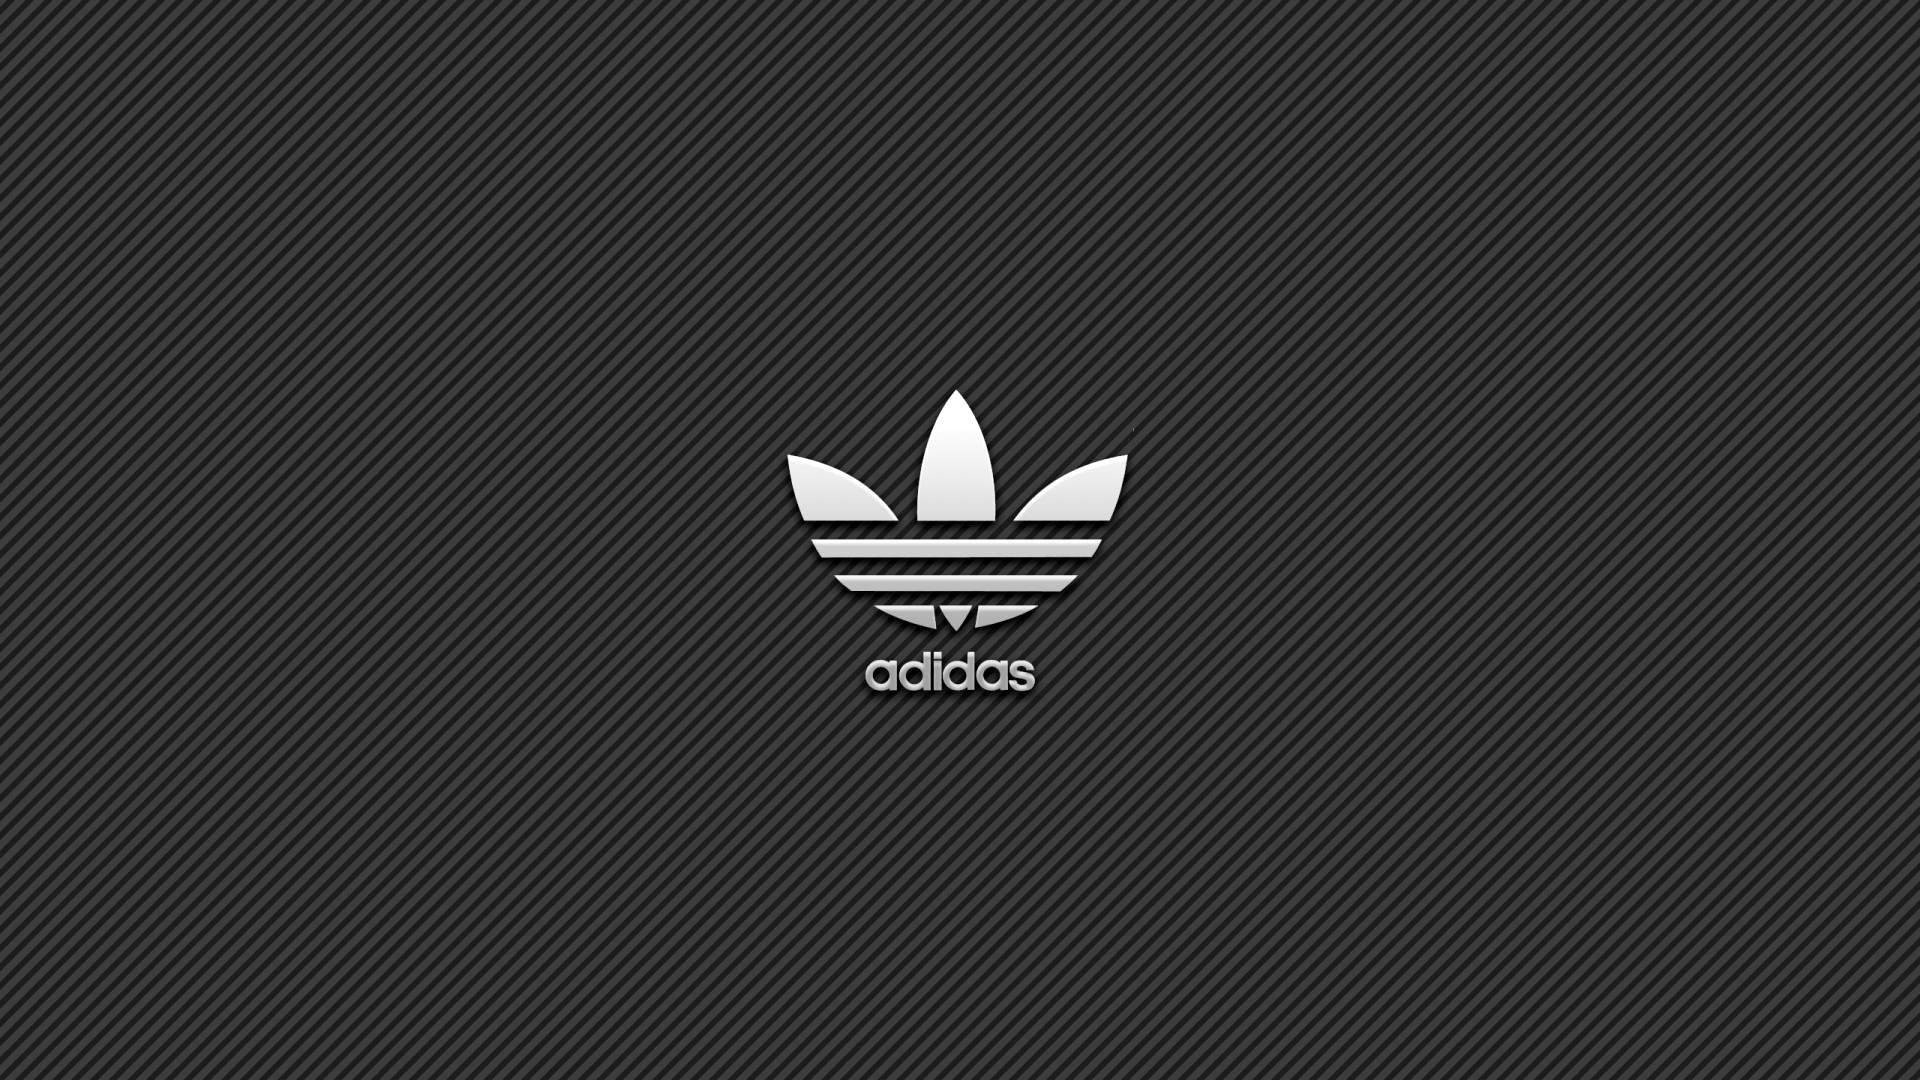 Cool soccer wallpapers for iphone 66 images - Adidas football hd wallpapers ...